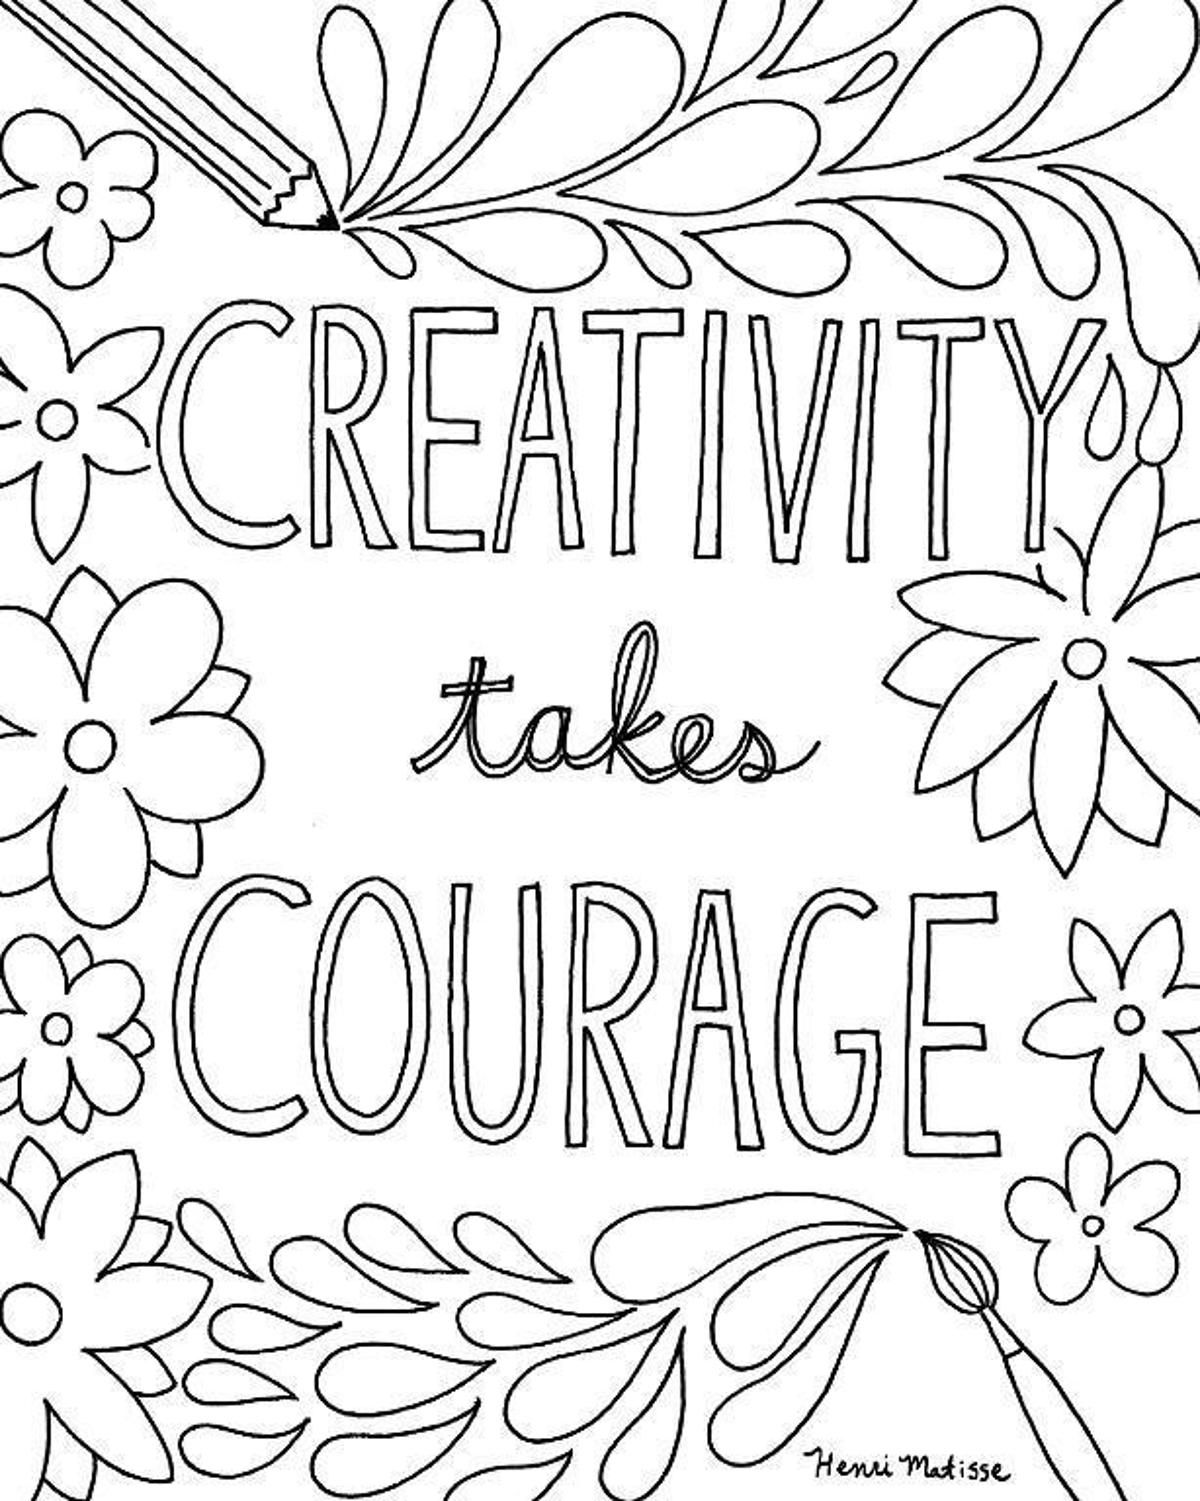 Creativity Takes Courage Coloring Page